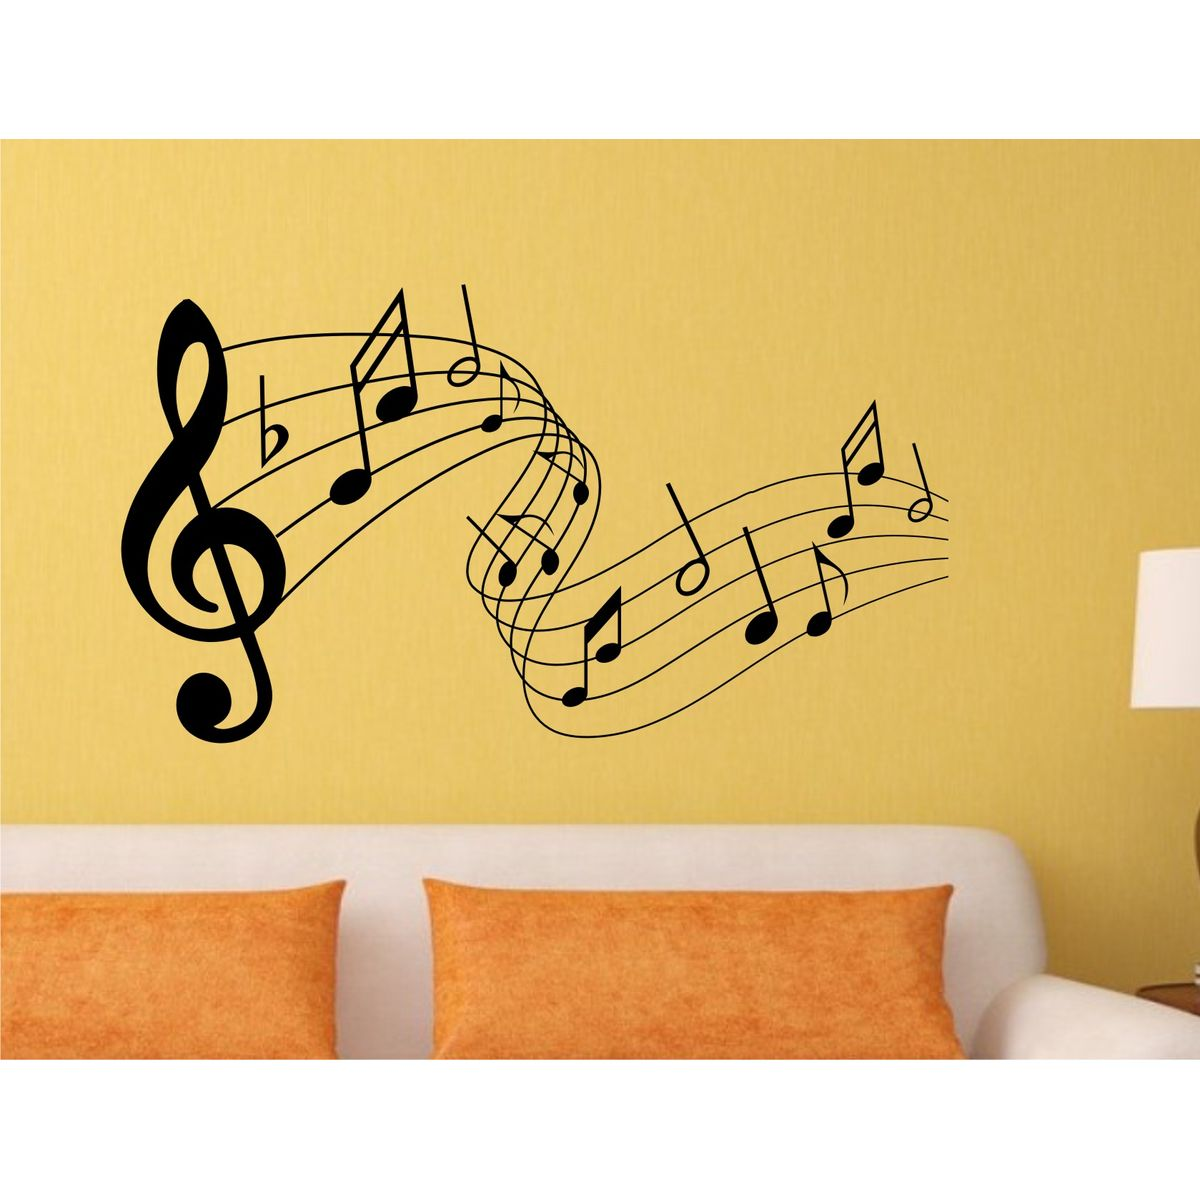 Wonderful Musical Notes Wall Art Ideas - The Wall Art Decorations ...